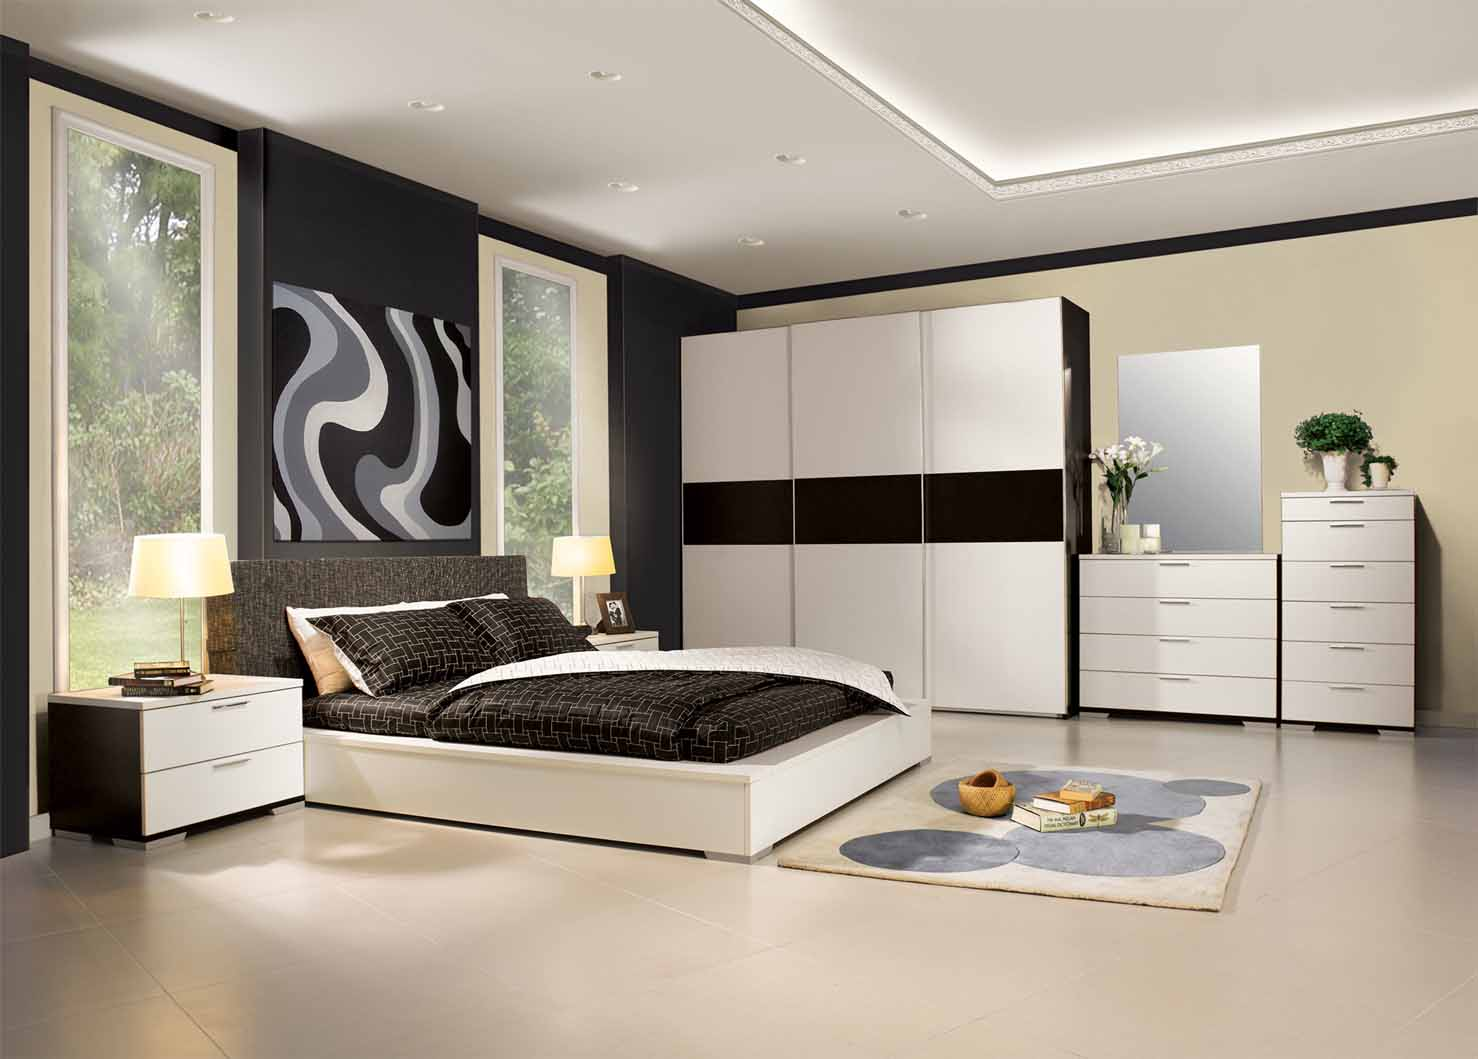 Awesome bedrooms ideas pictures 2014 decorating bedrooms for Bedroom ideas pictures